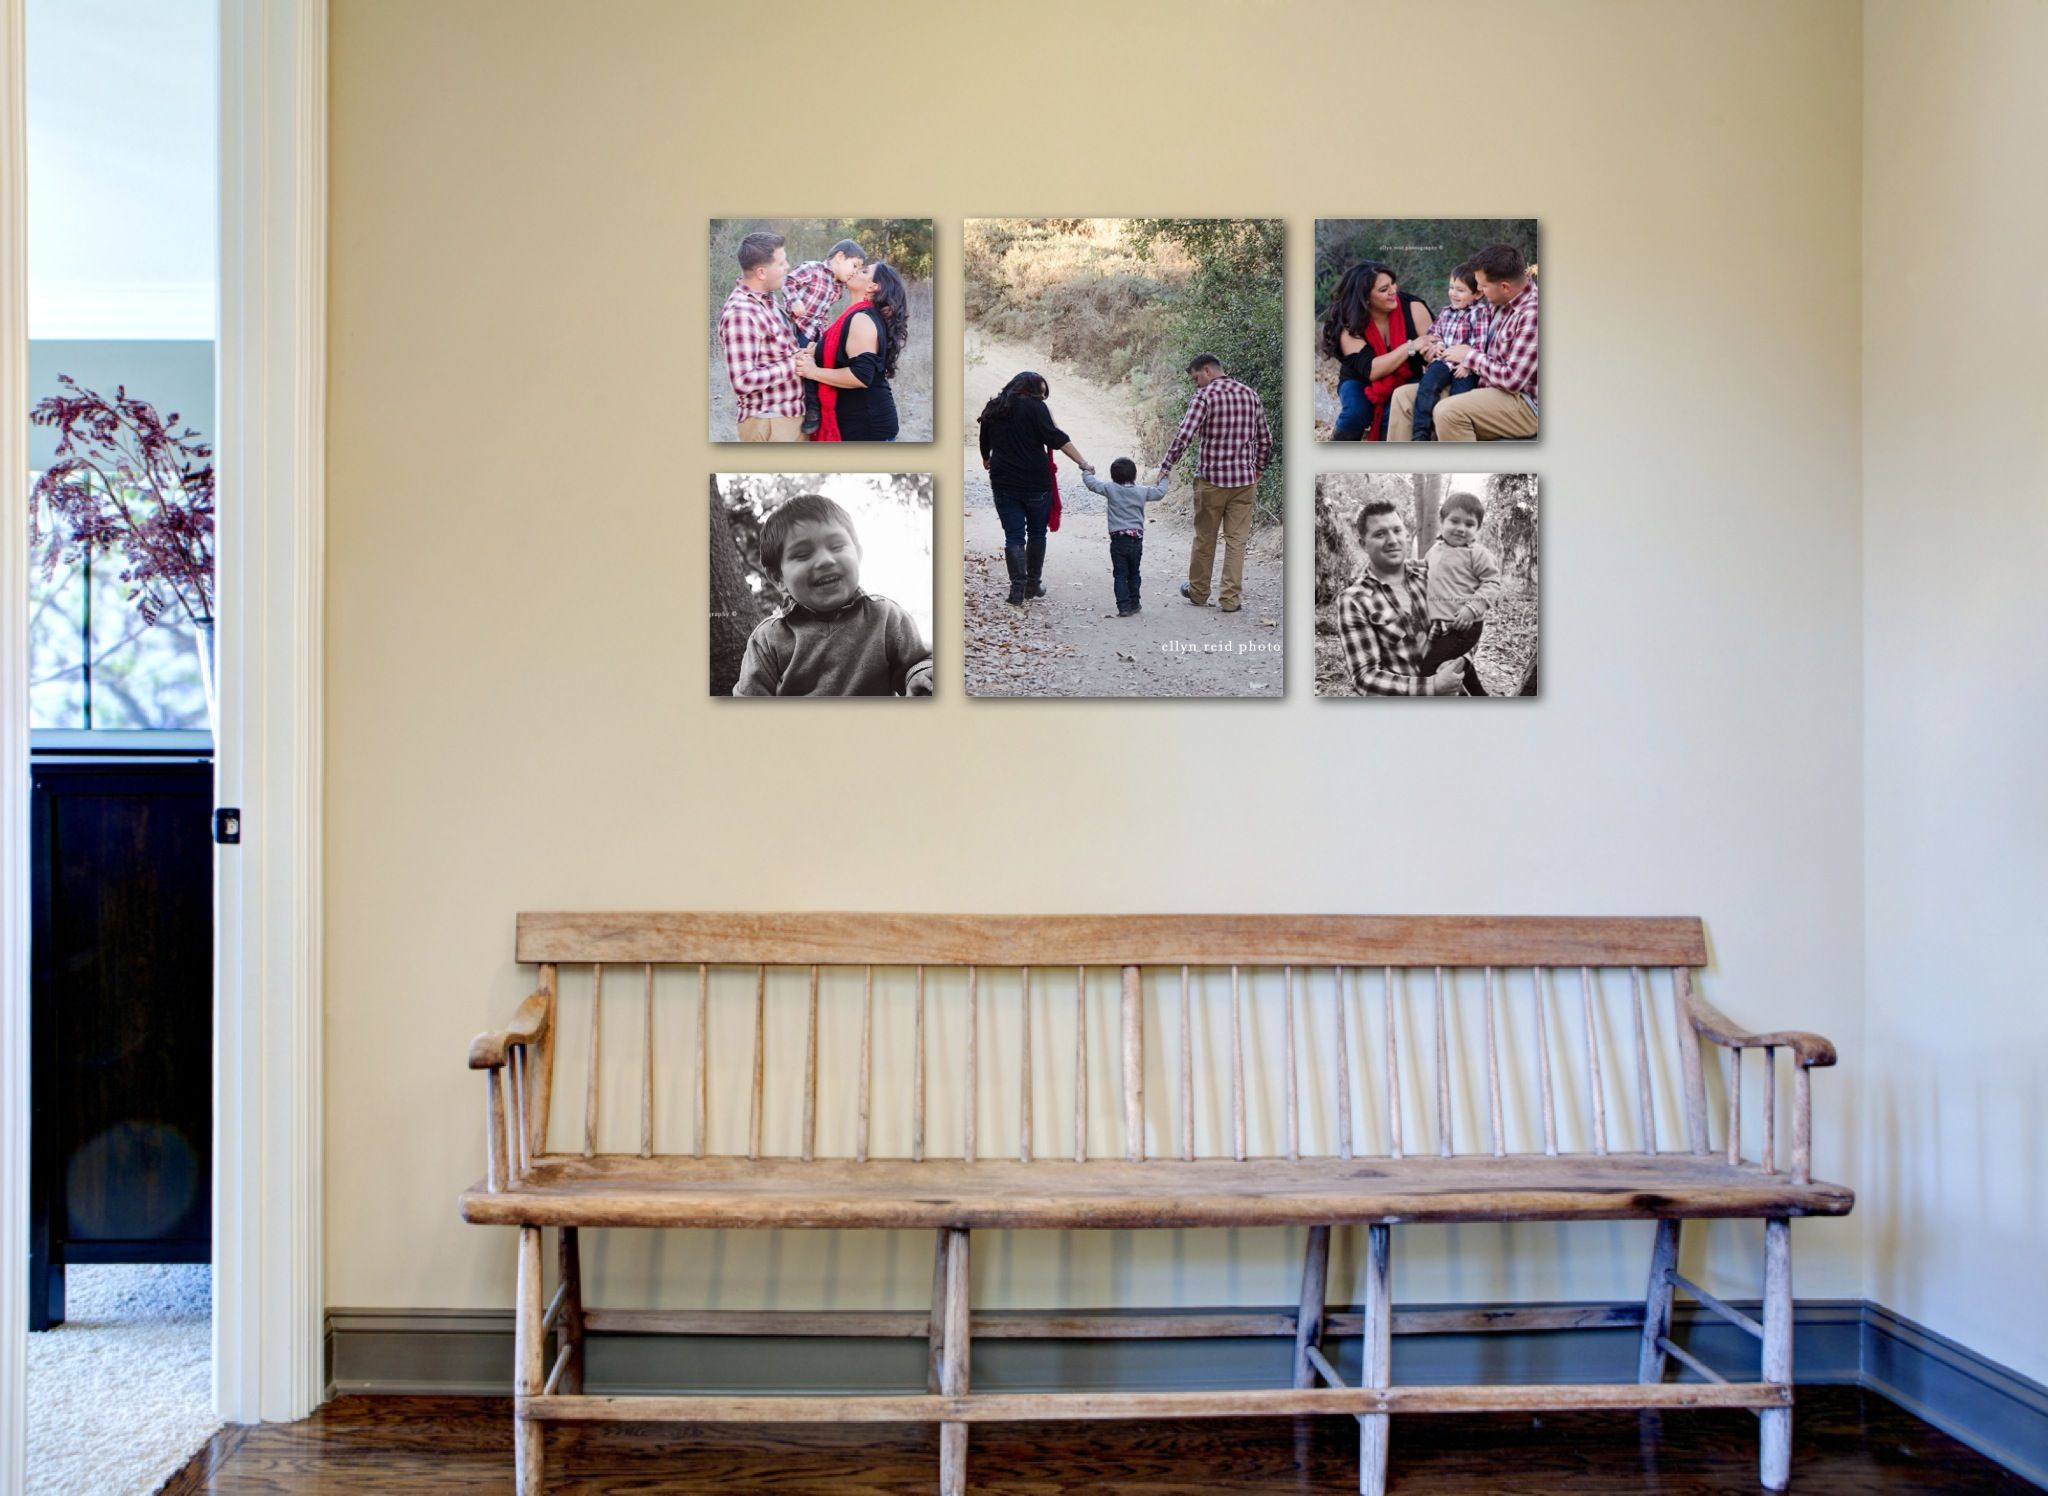 Decoration, Canvas Family Photo Wall Display Ideas In The Corridor House  With White Wall Interior … | Photo wall display, Family photo wall, Family  pictures on wall